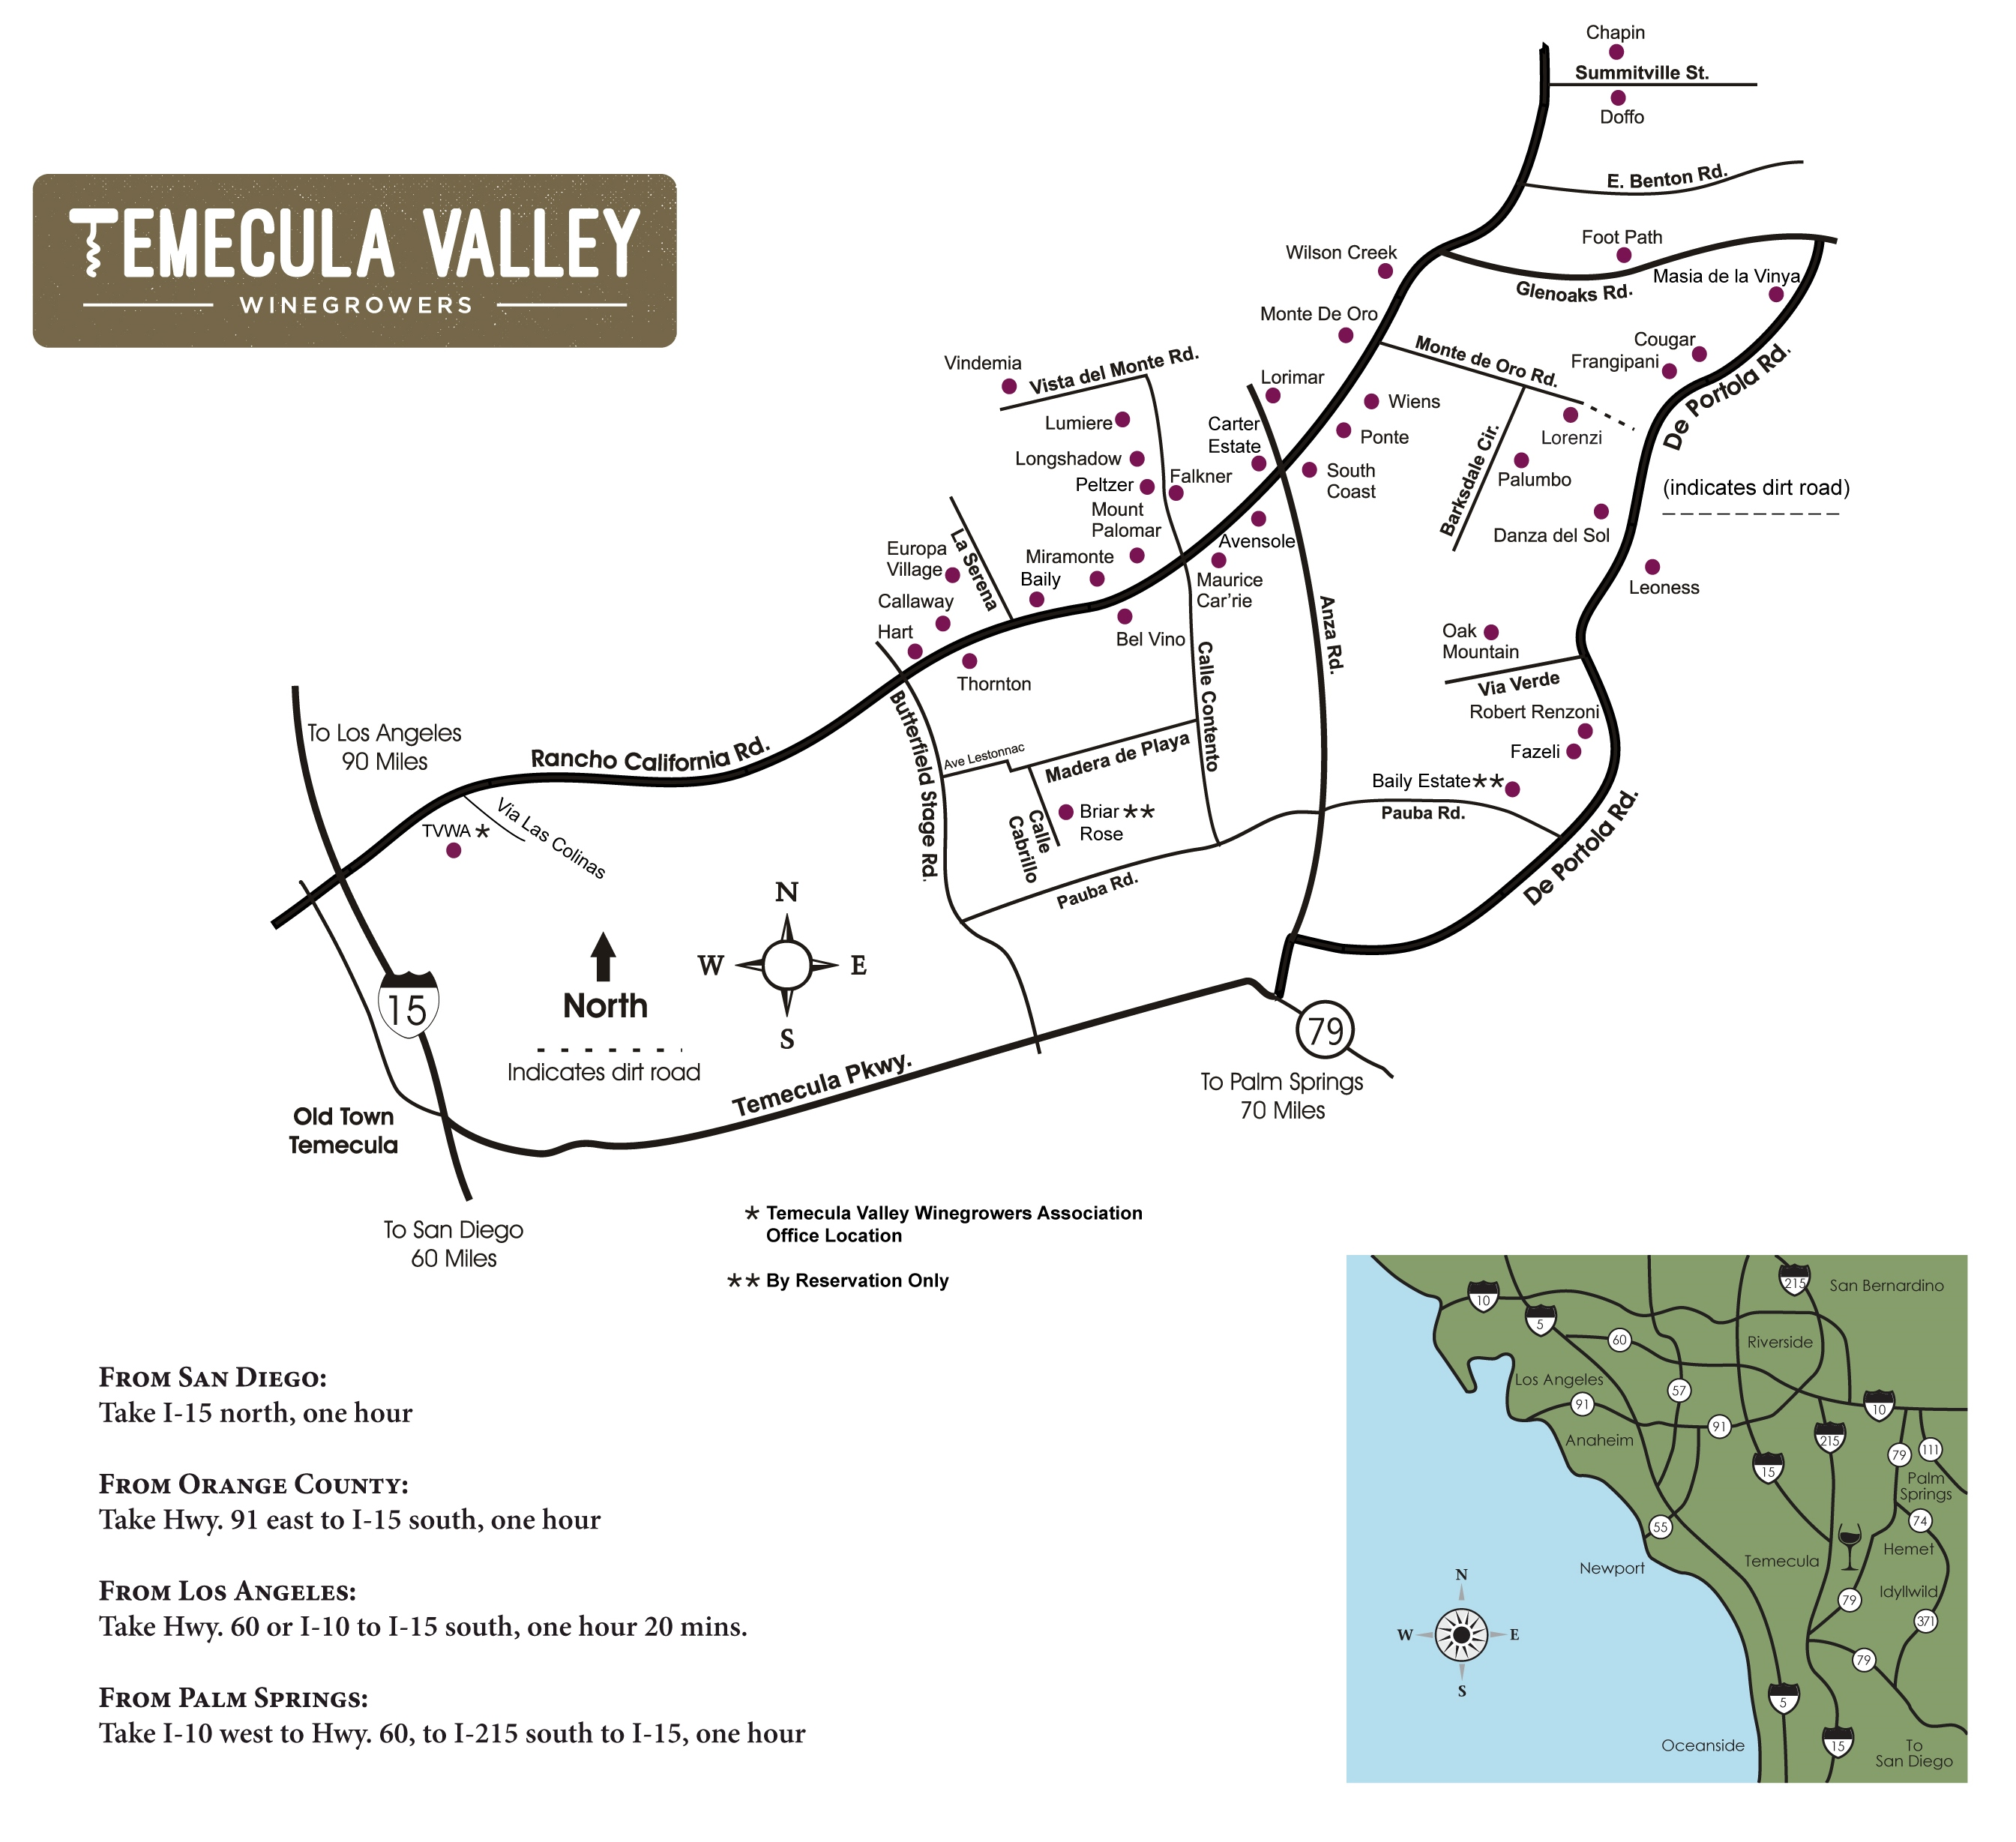 Temecula Valley Winegrowers Association Winery Map - Los angeles road map download